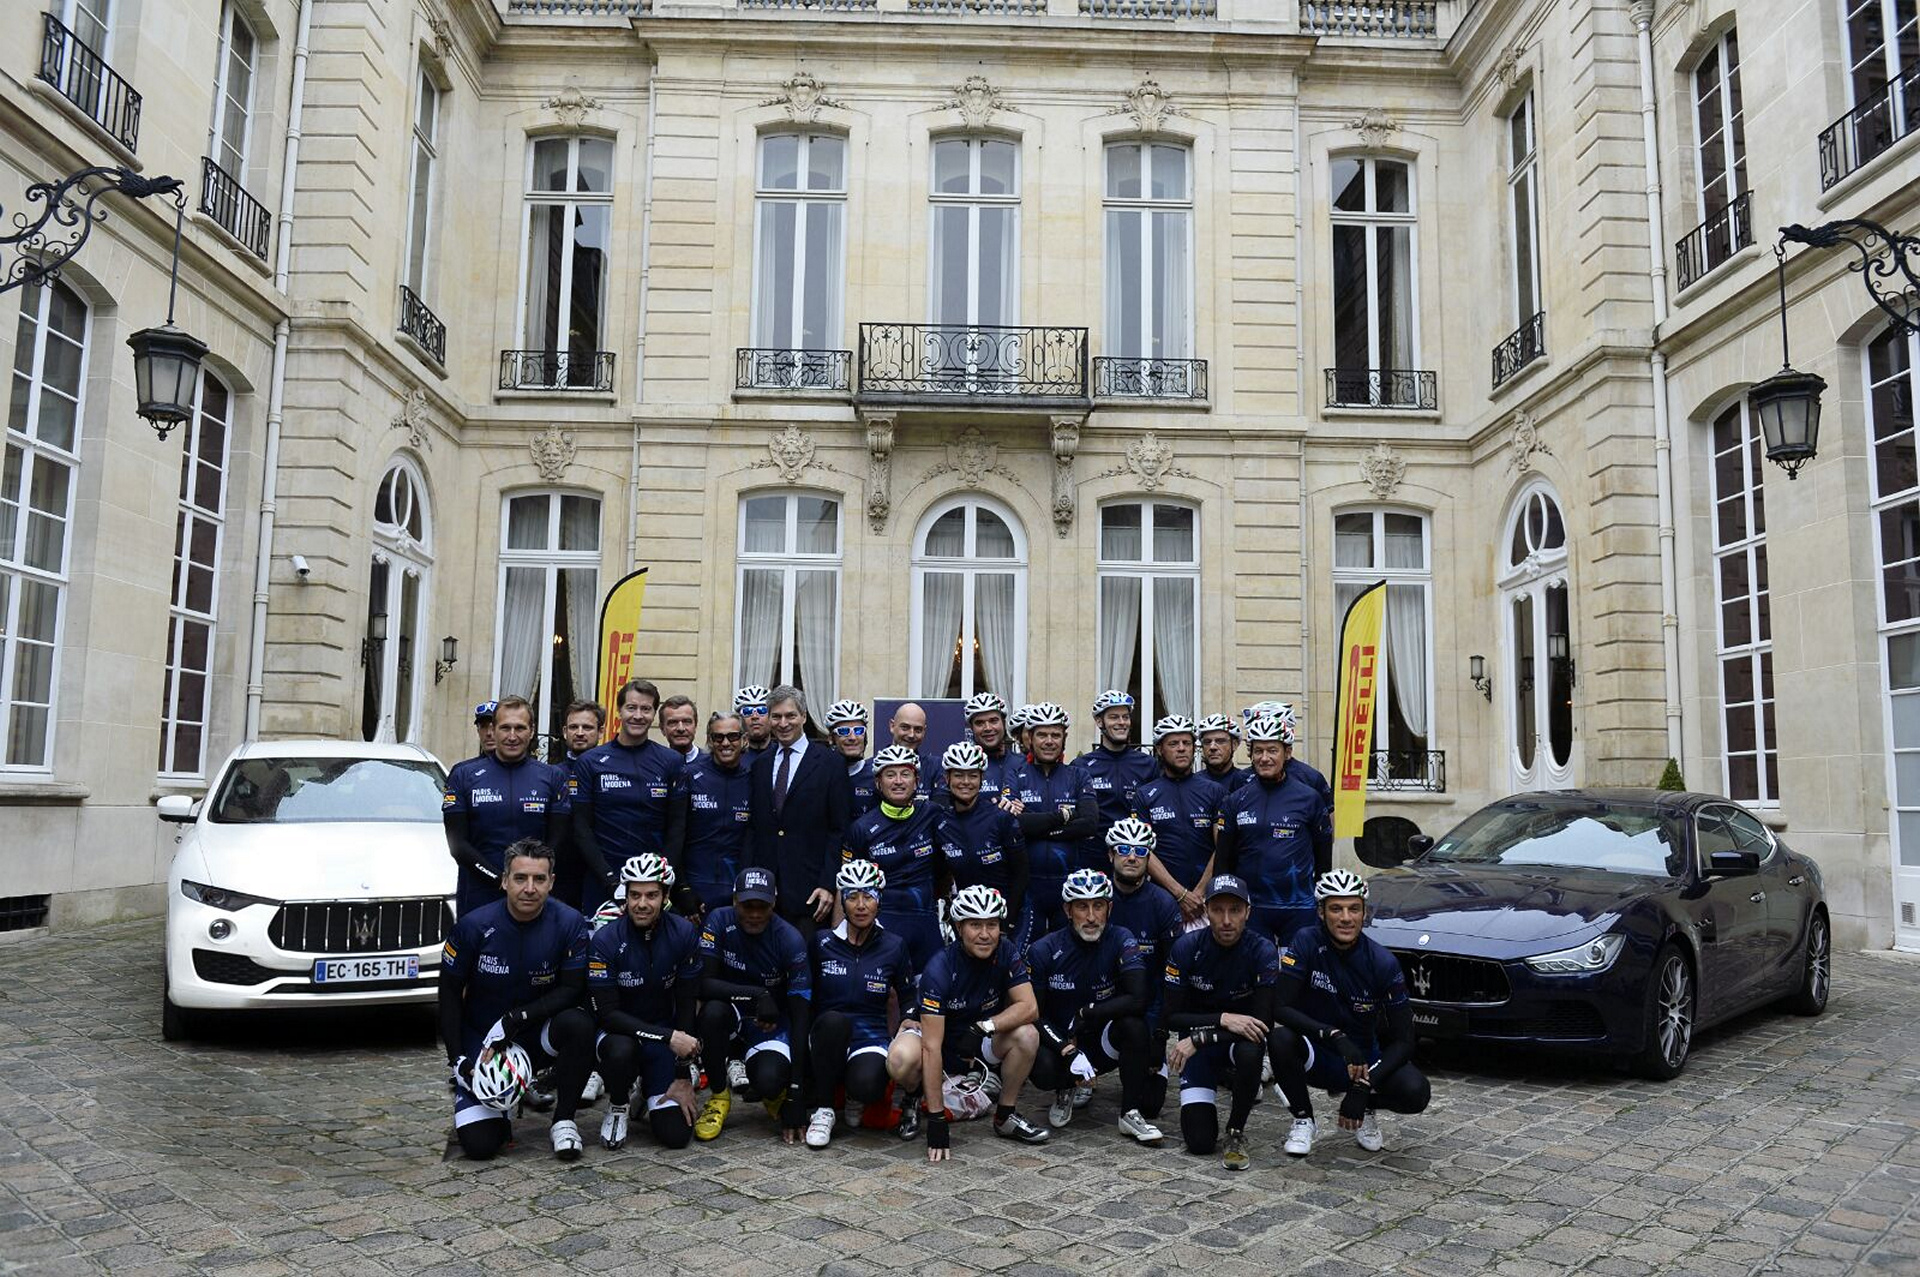 Participants at the start of the Paris Modena © Fiat Chrysler Automobiles N.V.